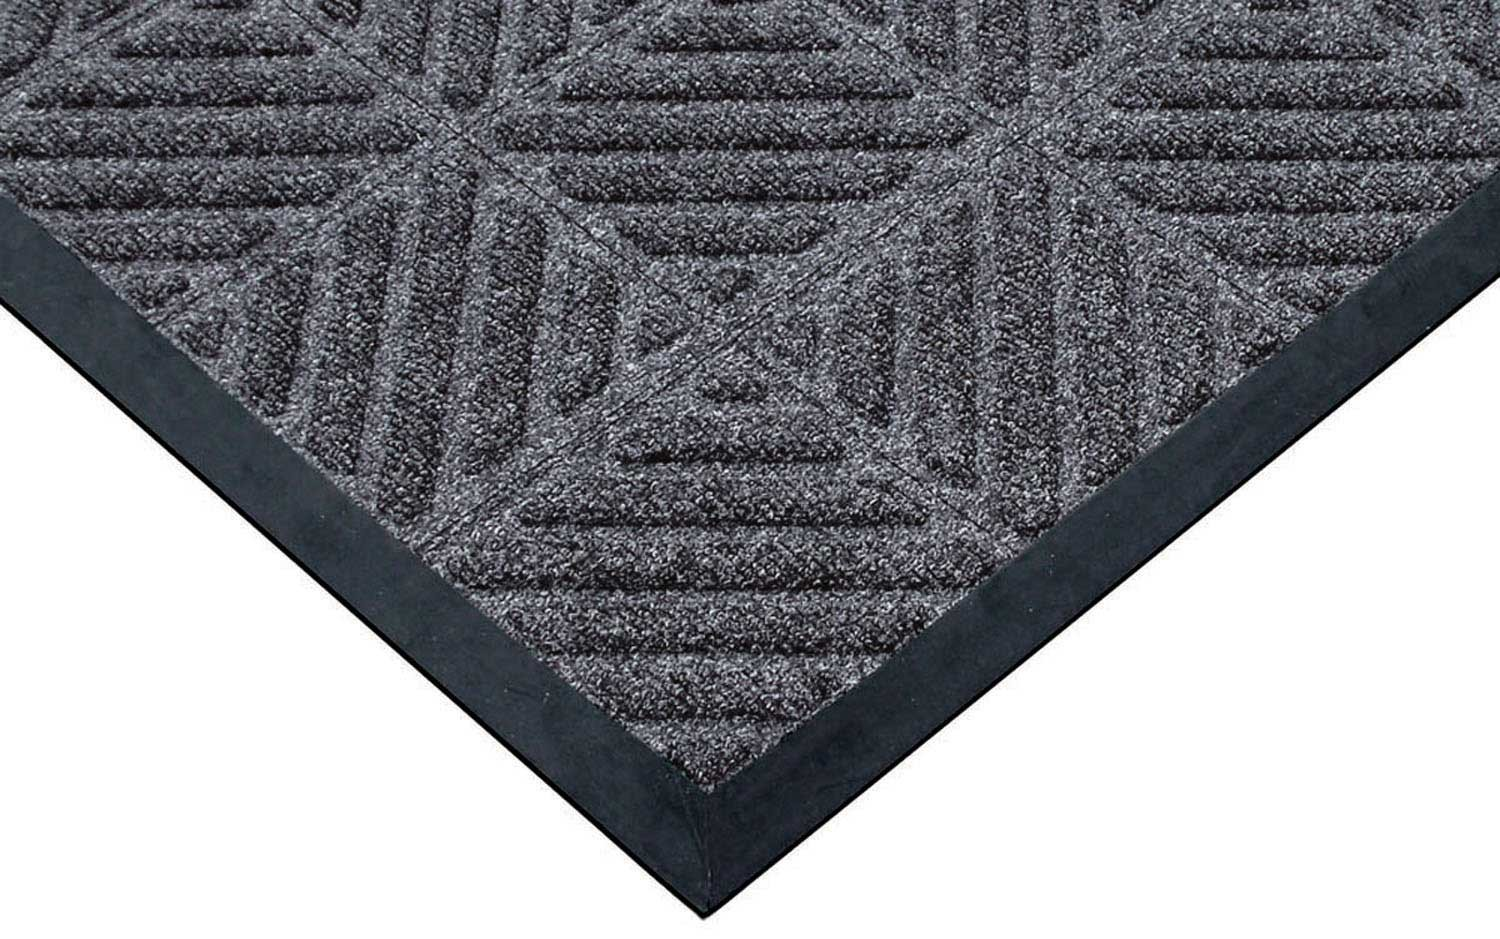 Attractive ECOMAT MONTAGE Indoor/Outdoor Entrance Floor Mat